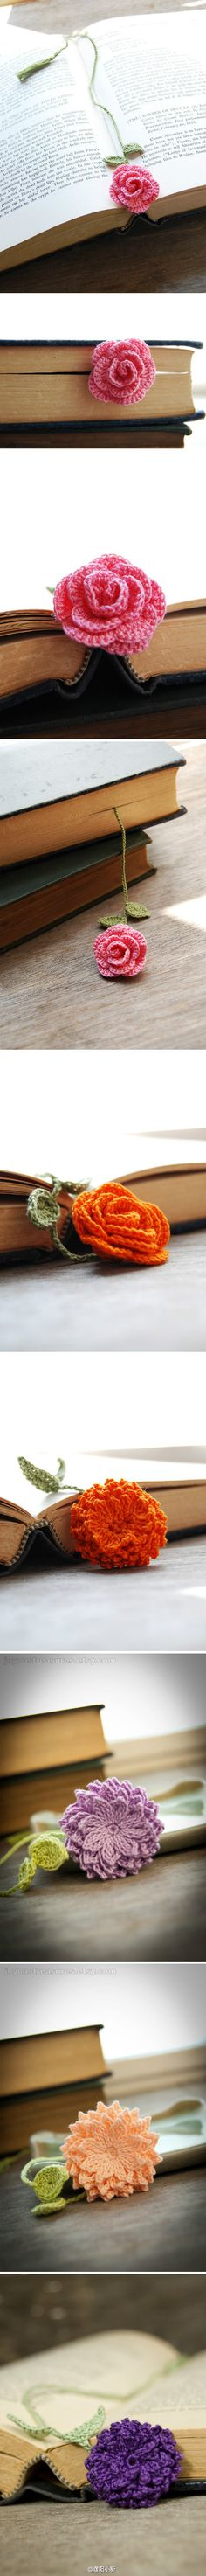 Pretty bookmarks - crochet flowers (but no pattern that I can see). Too bad there is no pattern. I don't crochet, but I sure would love for my crochet friends to make me one! Marque-pages Au Crochet, Crochet Amigurumi, Love Crochet, Crochet Crafts, Yarn Crafts, Beautiful Crochet, Easy Crochet, Yarn Projects, Knitting Projects